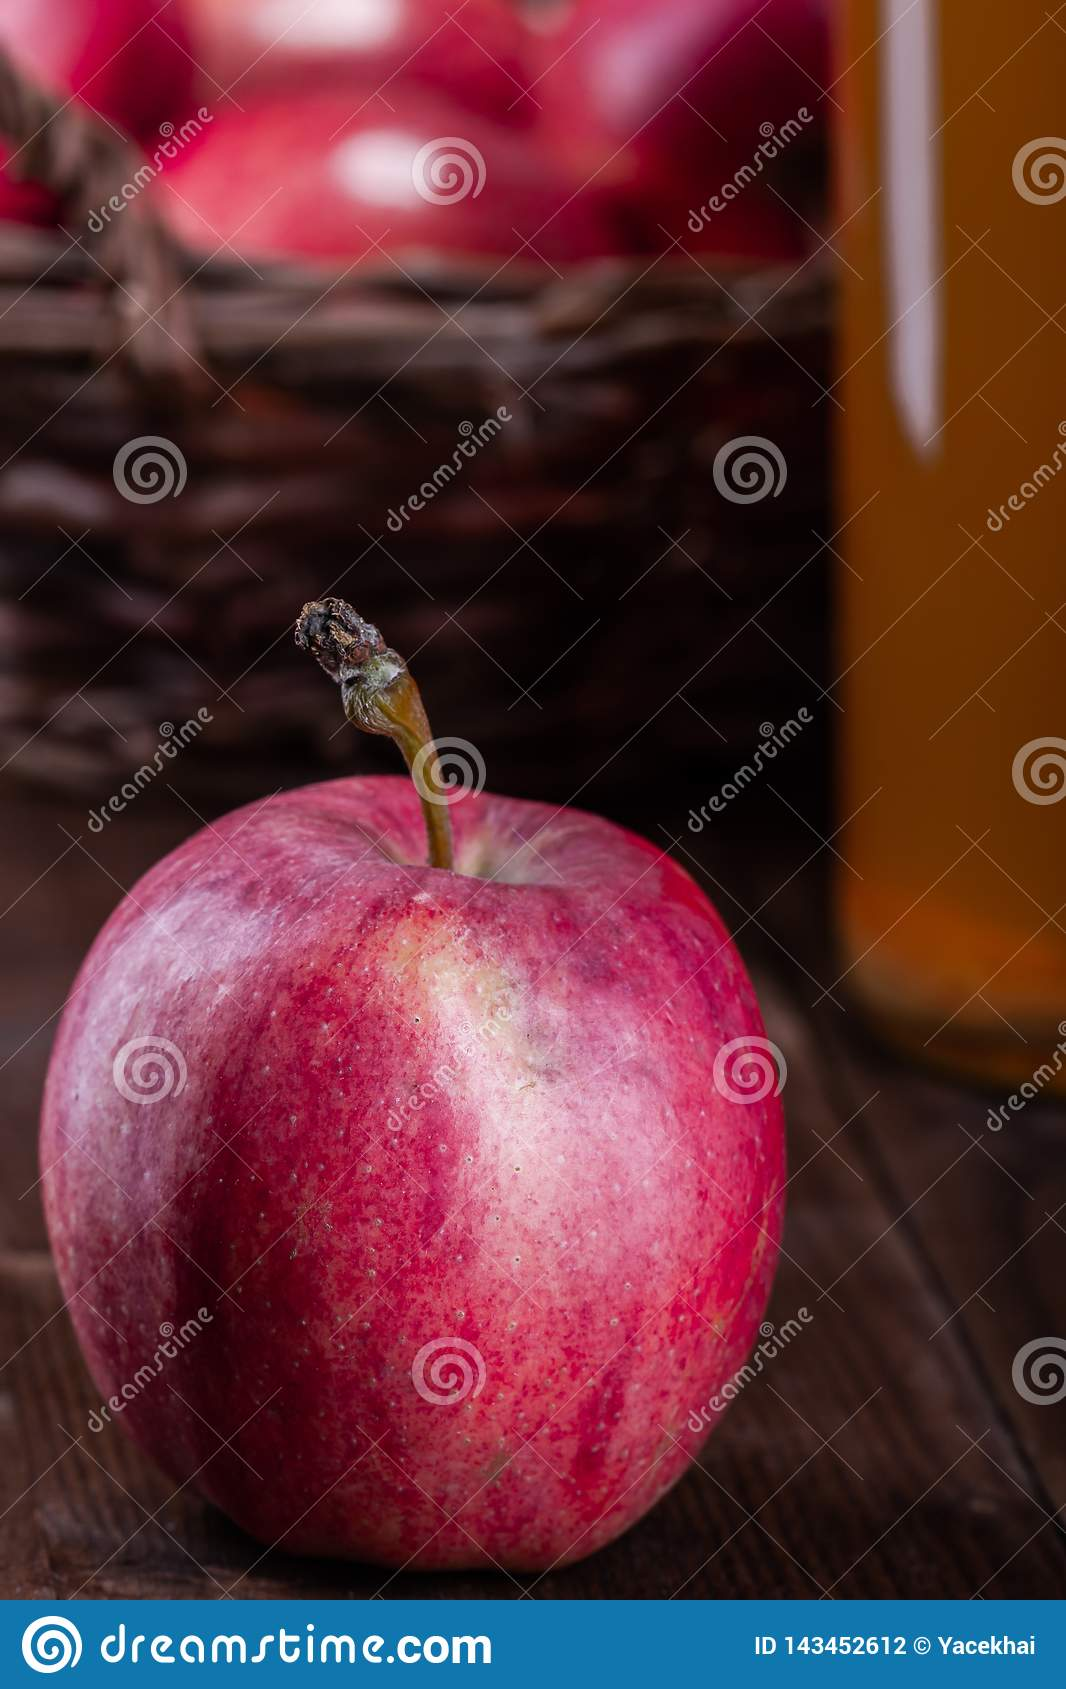 Red, organic apple. Fruit in a wooden basket on a wooden table.